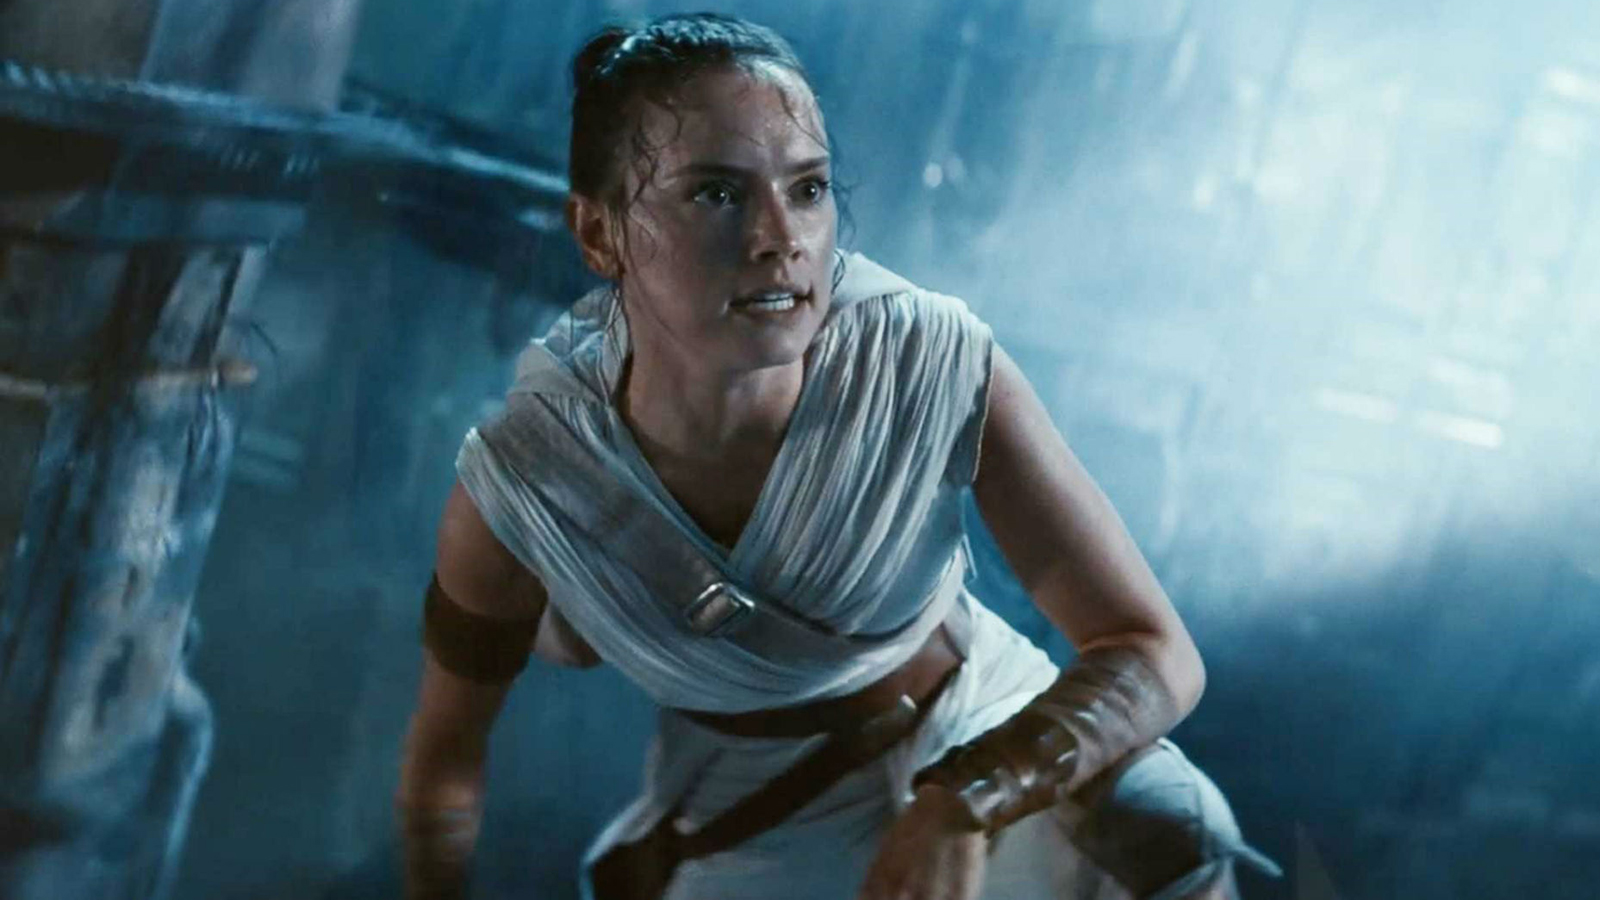 Rey in Star Wars Rise of Skywalker